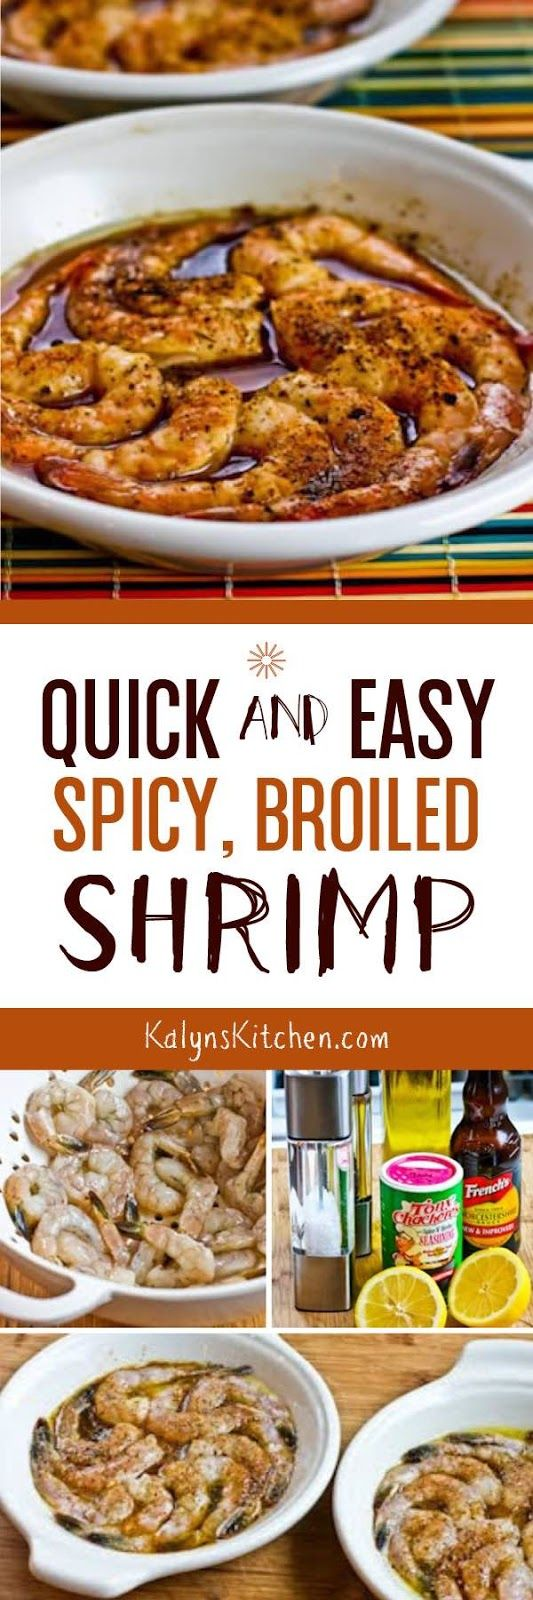 Quick and Easy Spicy Broiled Shrimp is an easy and impressive dinner that's low-carb, Keto, low-glycemic, gluten-free, dairy-free, South Beach Diet friendly, and it can even be Paleo if you use approved Worcestershire sauce.  [found on KalynsKitchen.com]